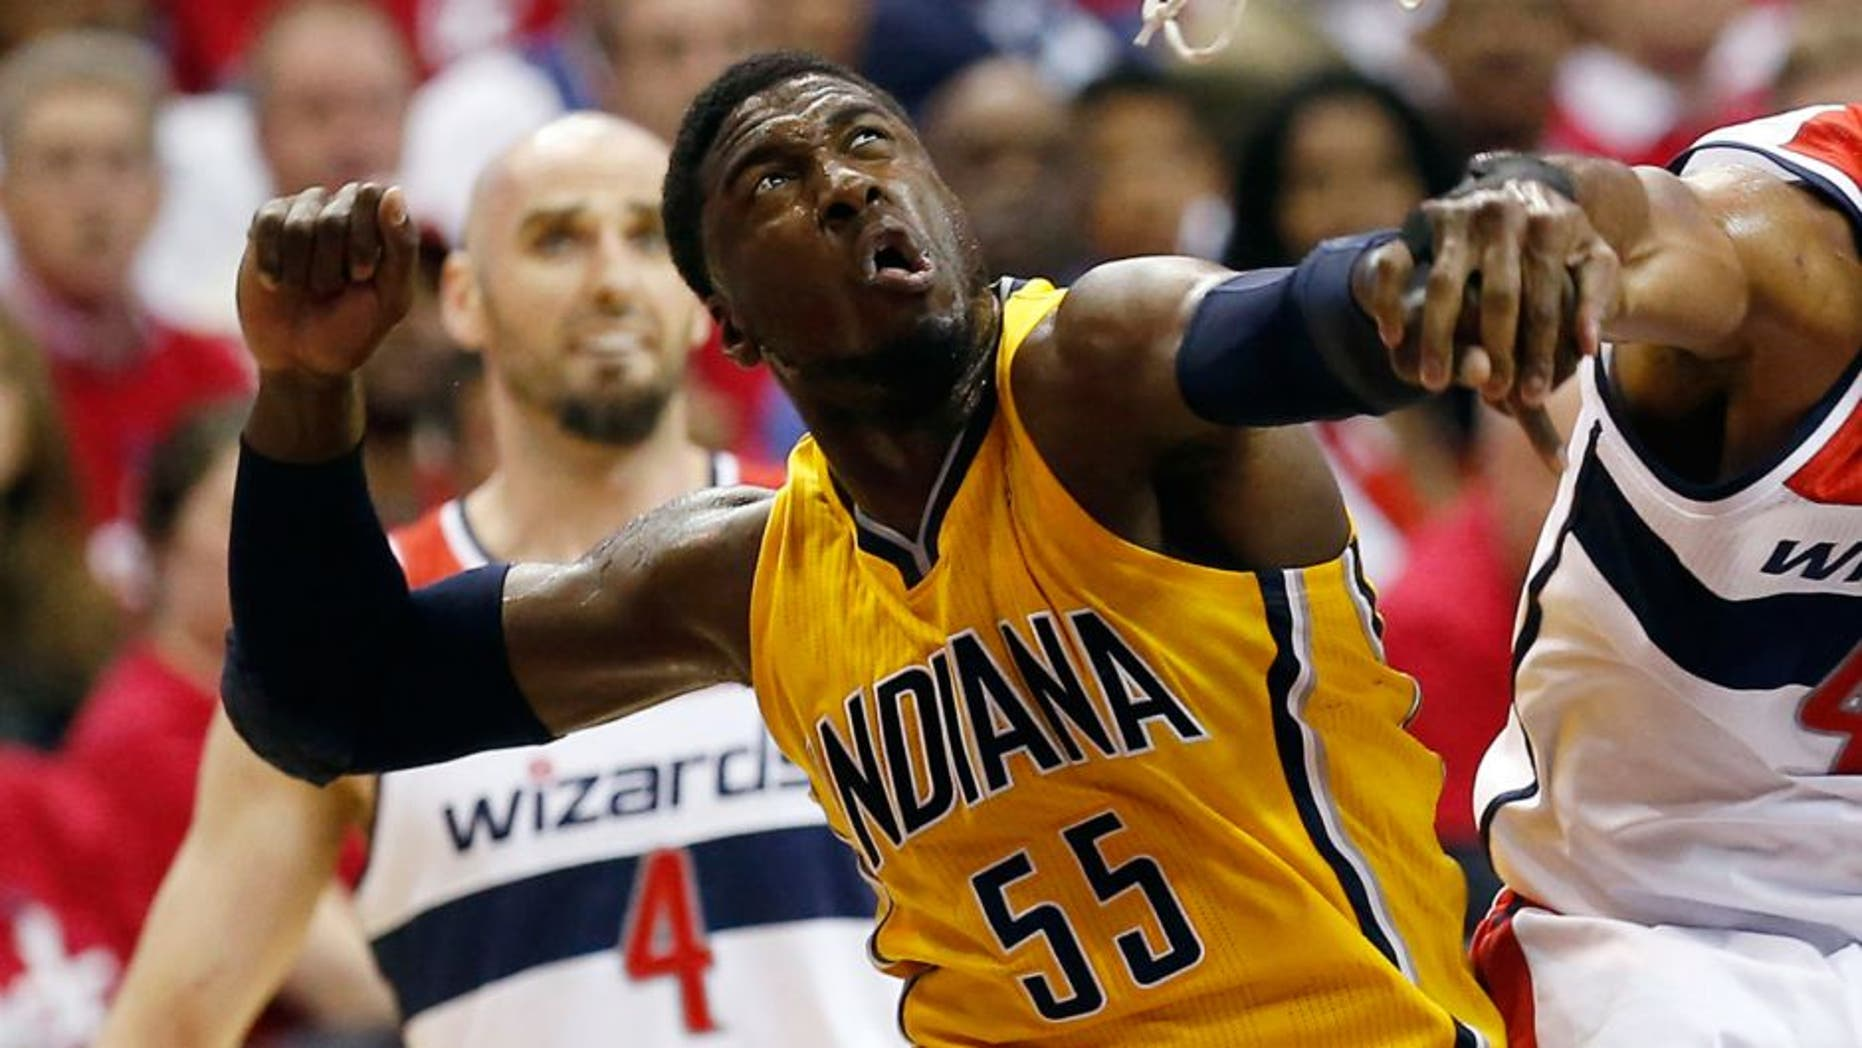 May 15, 2014; Washington, DC, USA; Indiana Pacers center Roy Hibbert (55) blocks the shot of Washington Wizards forward Nene (42) in the first quarter in game six of the second round of the 2014 NBA Playoffs at Verizon Center. Mandatory Credit: Geoff Burke-USA TODAY Sports